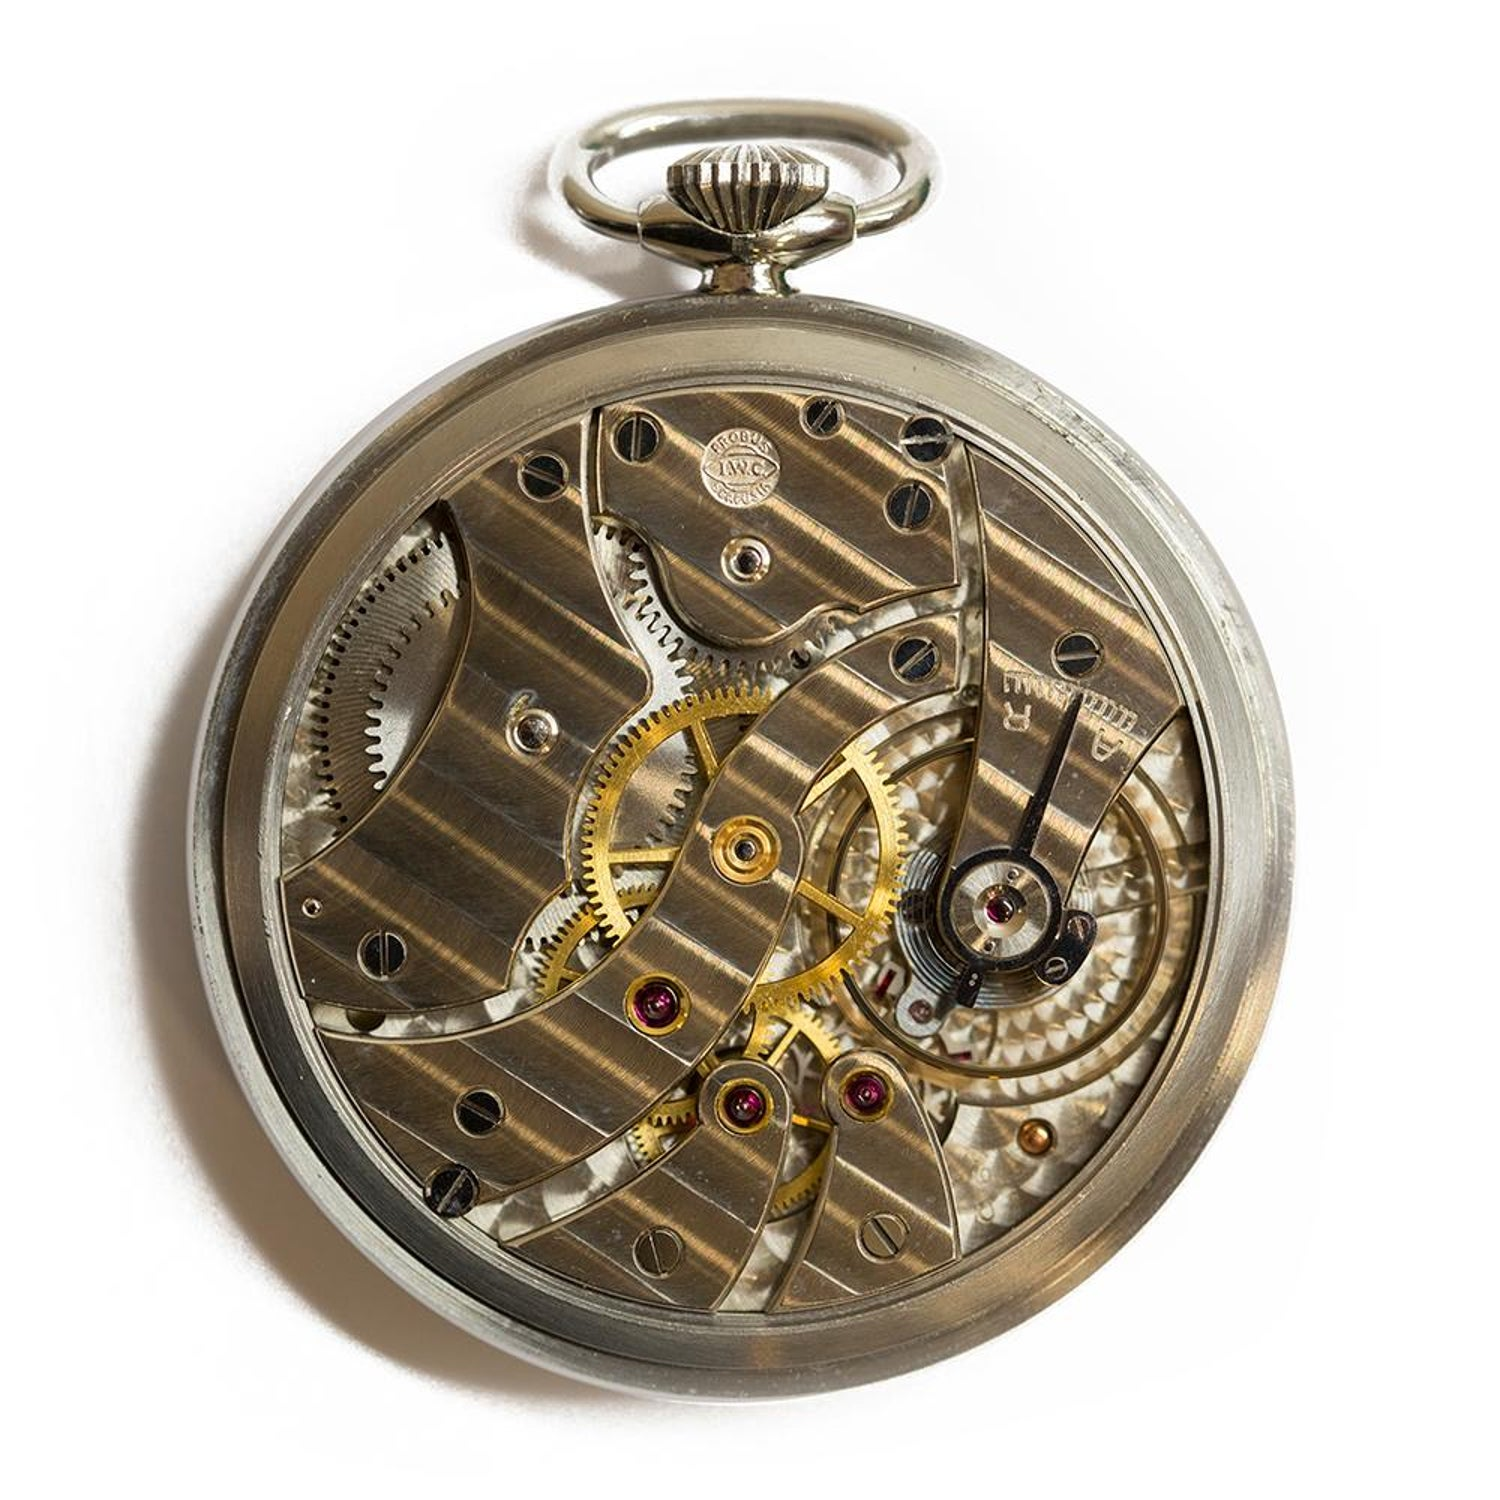 ab93b766d 1937 IWC Pocket Watch Military Stainless Steel C.67 Pocket watch For Sale at  1stdibs